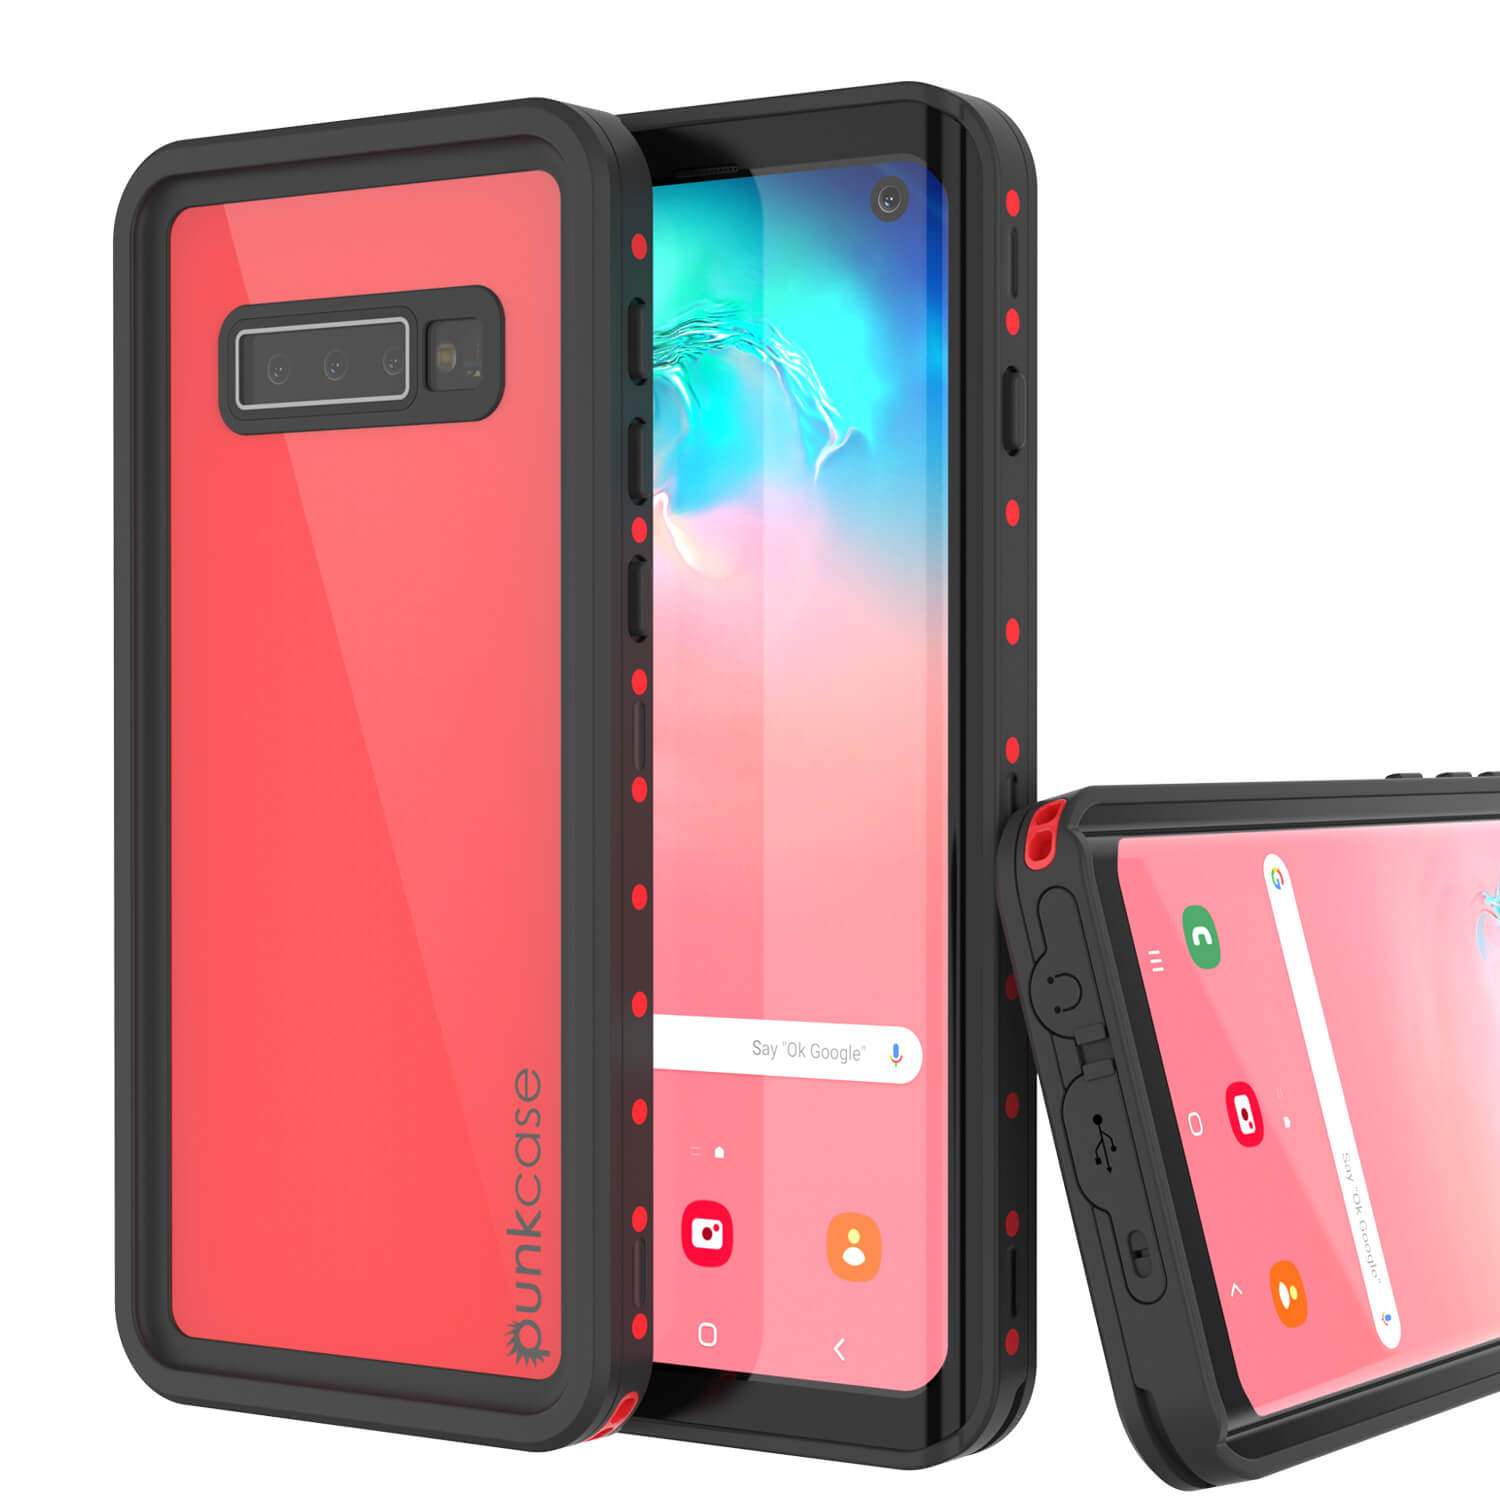 Galaxy S10 Waterproof Case PunkCase StudStar Red Thin 6.6ft Underwater IP68 Shock/Snow Proof